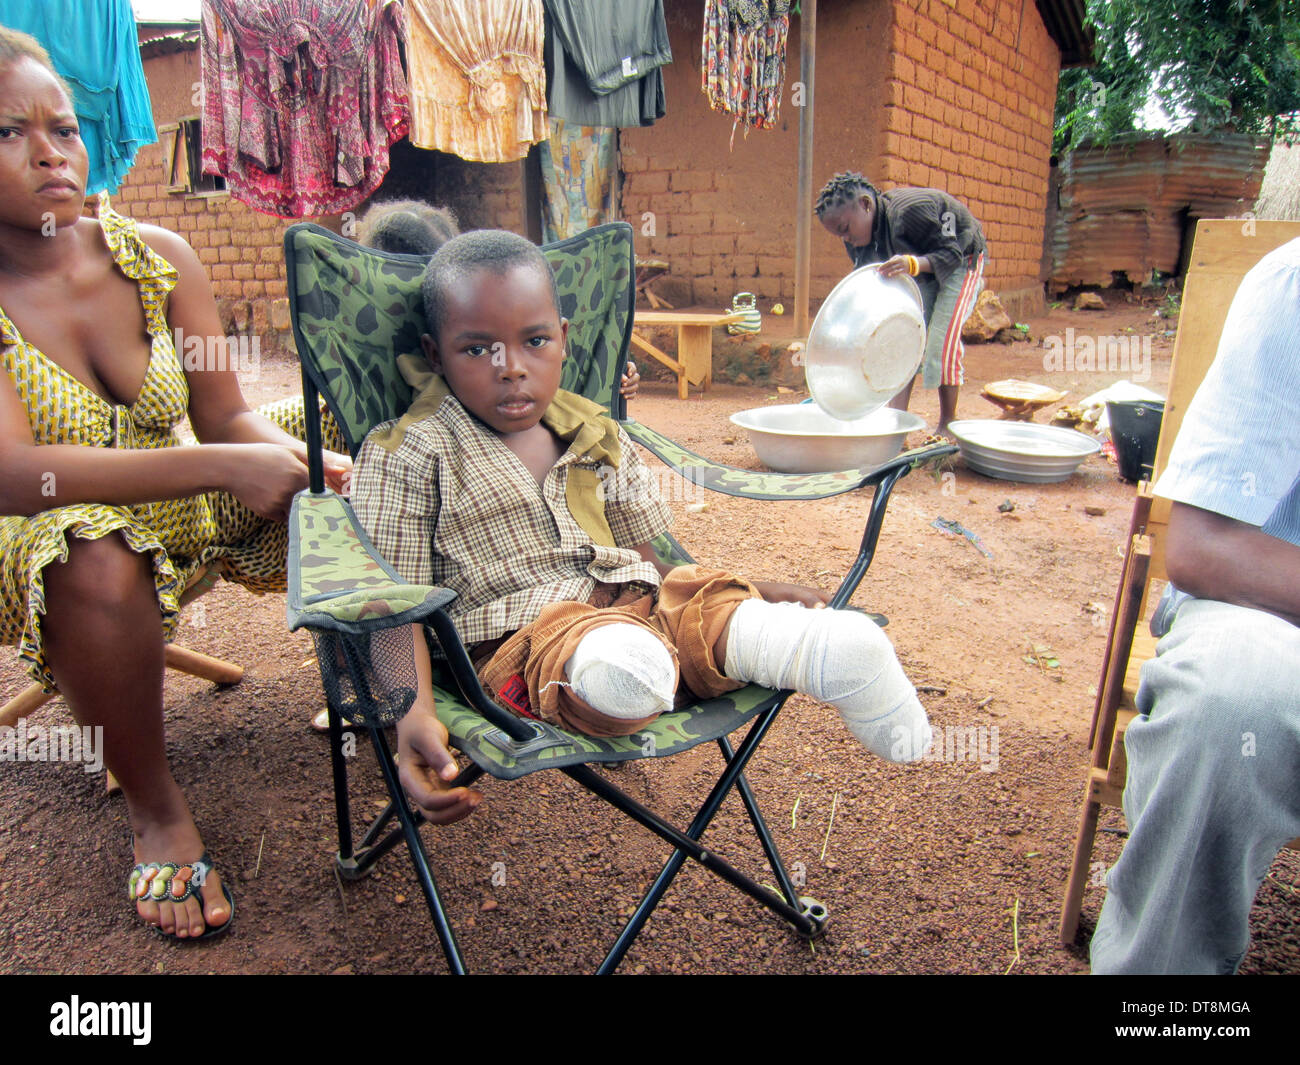 HANDOUT - An Amnesty International handout photo dated 2013 shows victims of Human Rights Violations by Seleka forces - Jovachi Mongonou had both legs amputated after he was injured by a shell, in the Central African Republic. Photo: AMNESTY INTERNATIONAL / Godfrey Byaruhanga / HANDOUT/EDITORIAL USE ONLY/MANDATORY CREDIT/NO SALES - Stock Image